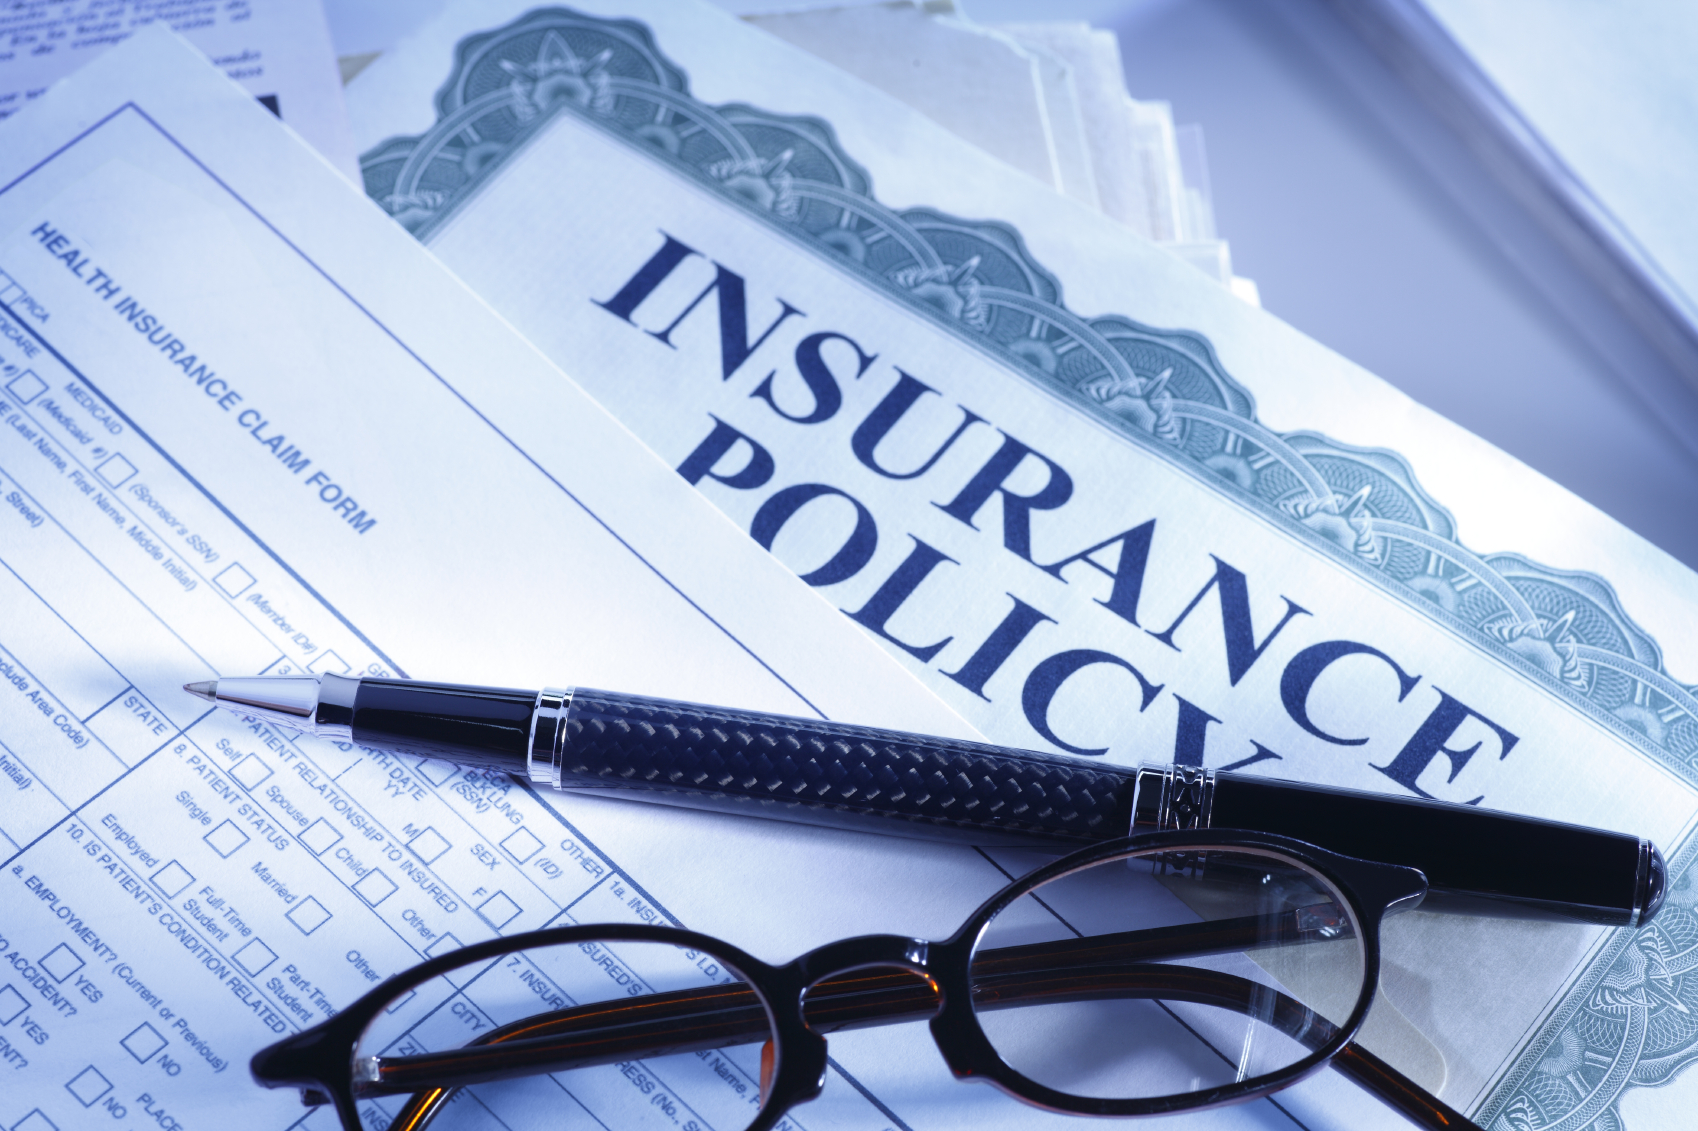 health-insurance-tax-scares-the-daylights-out-of-some-small-business-owners